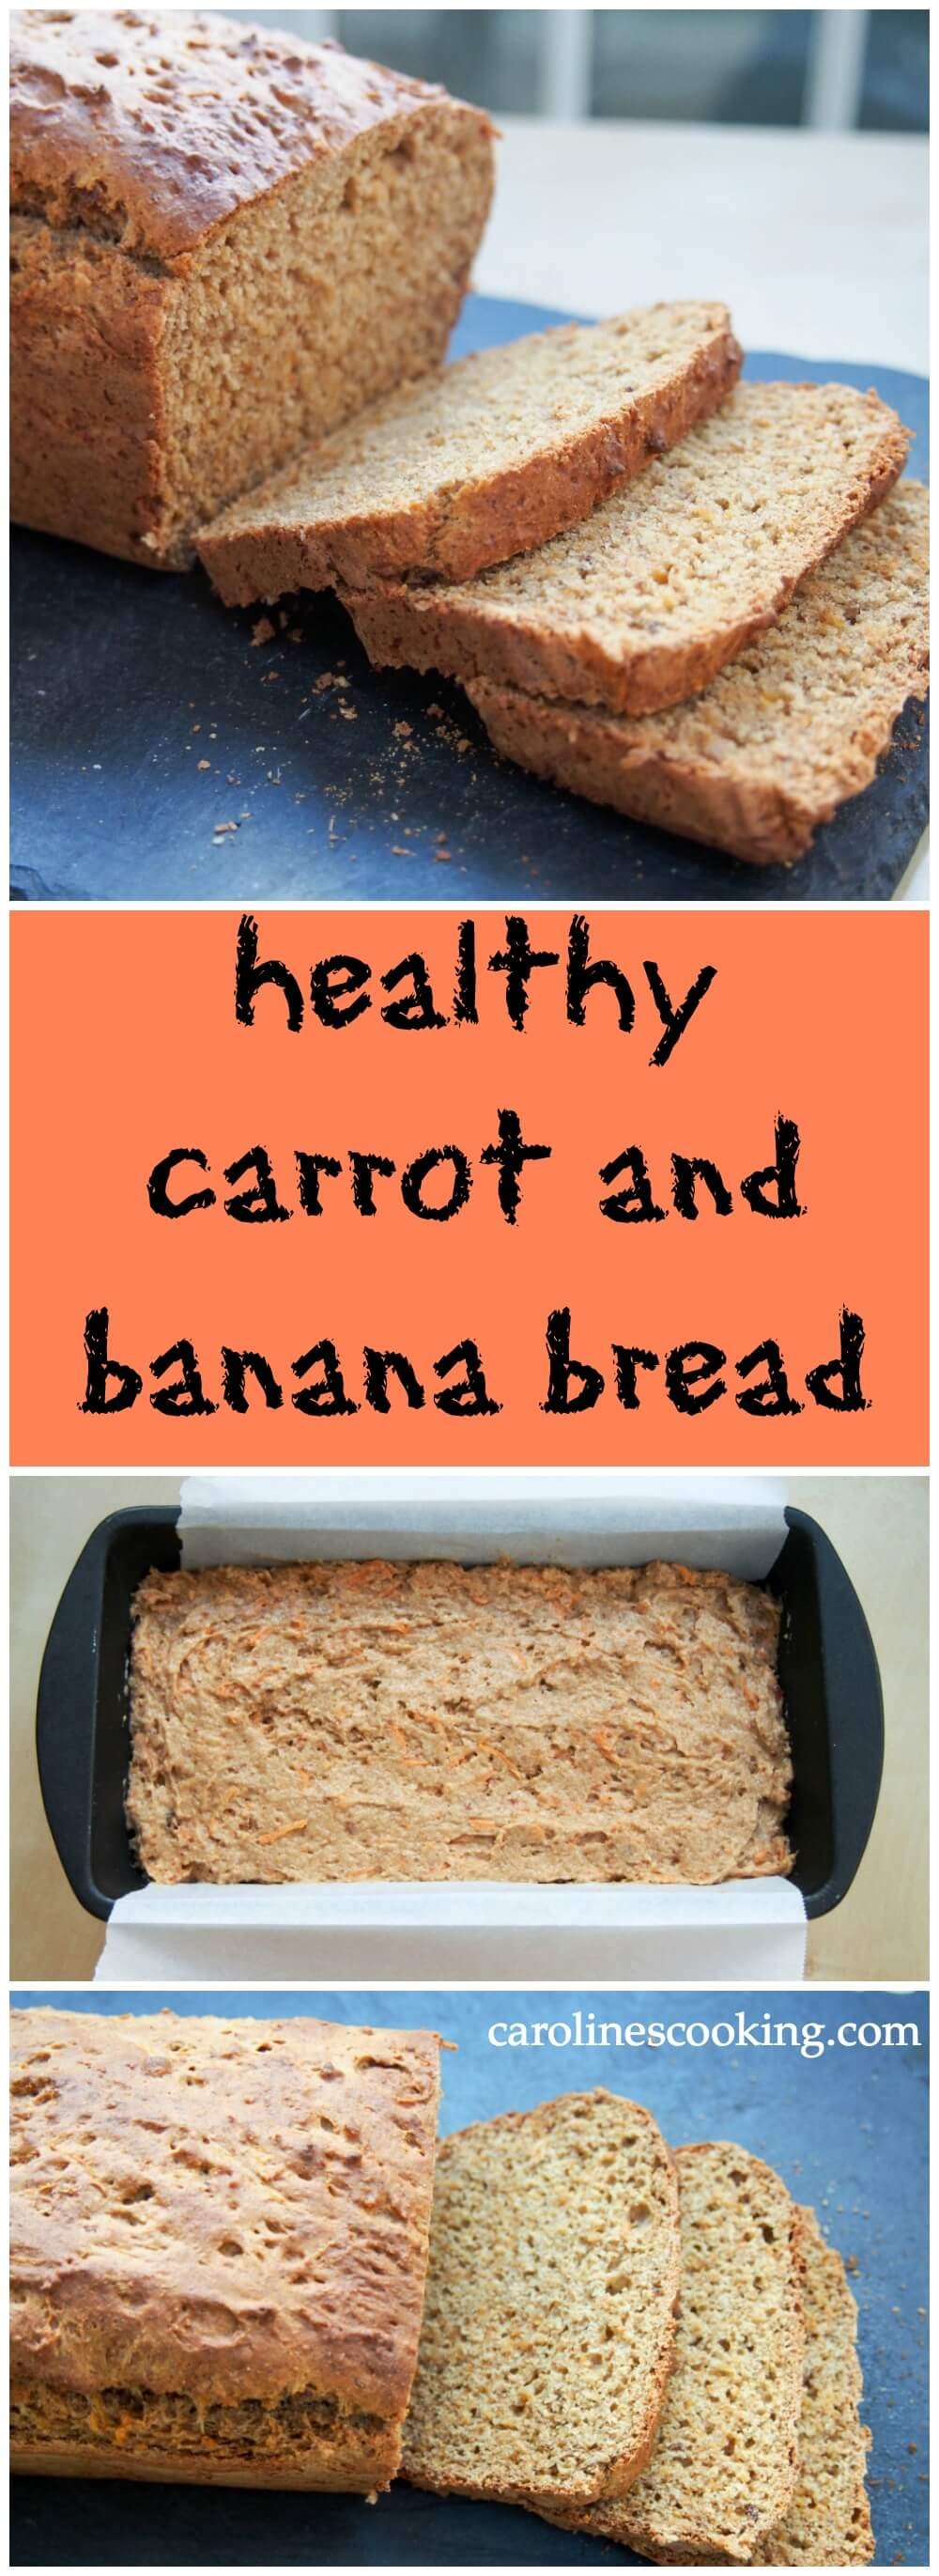 Easy to make, with no added sugar & lots of delicious ingredients, this carrot and banana bread is healthy & the best of carrot cake & banana bread in one.